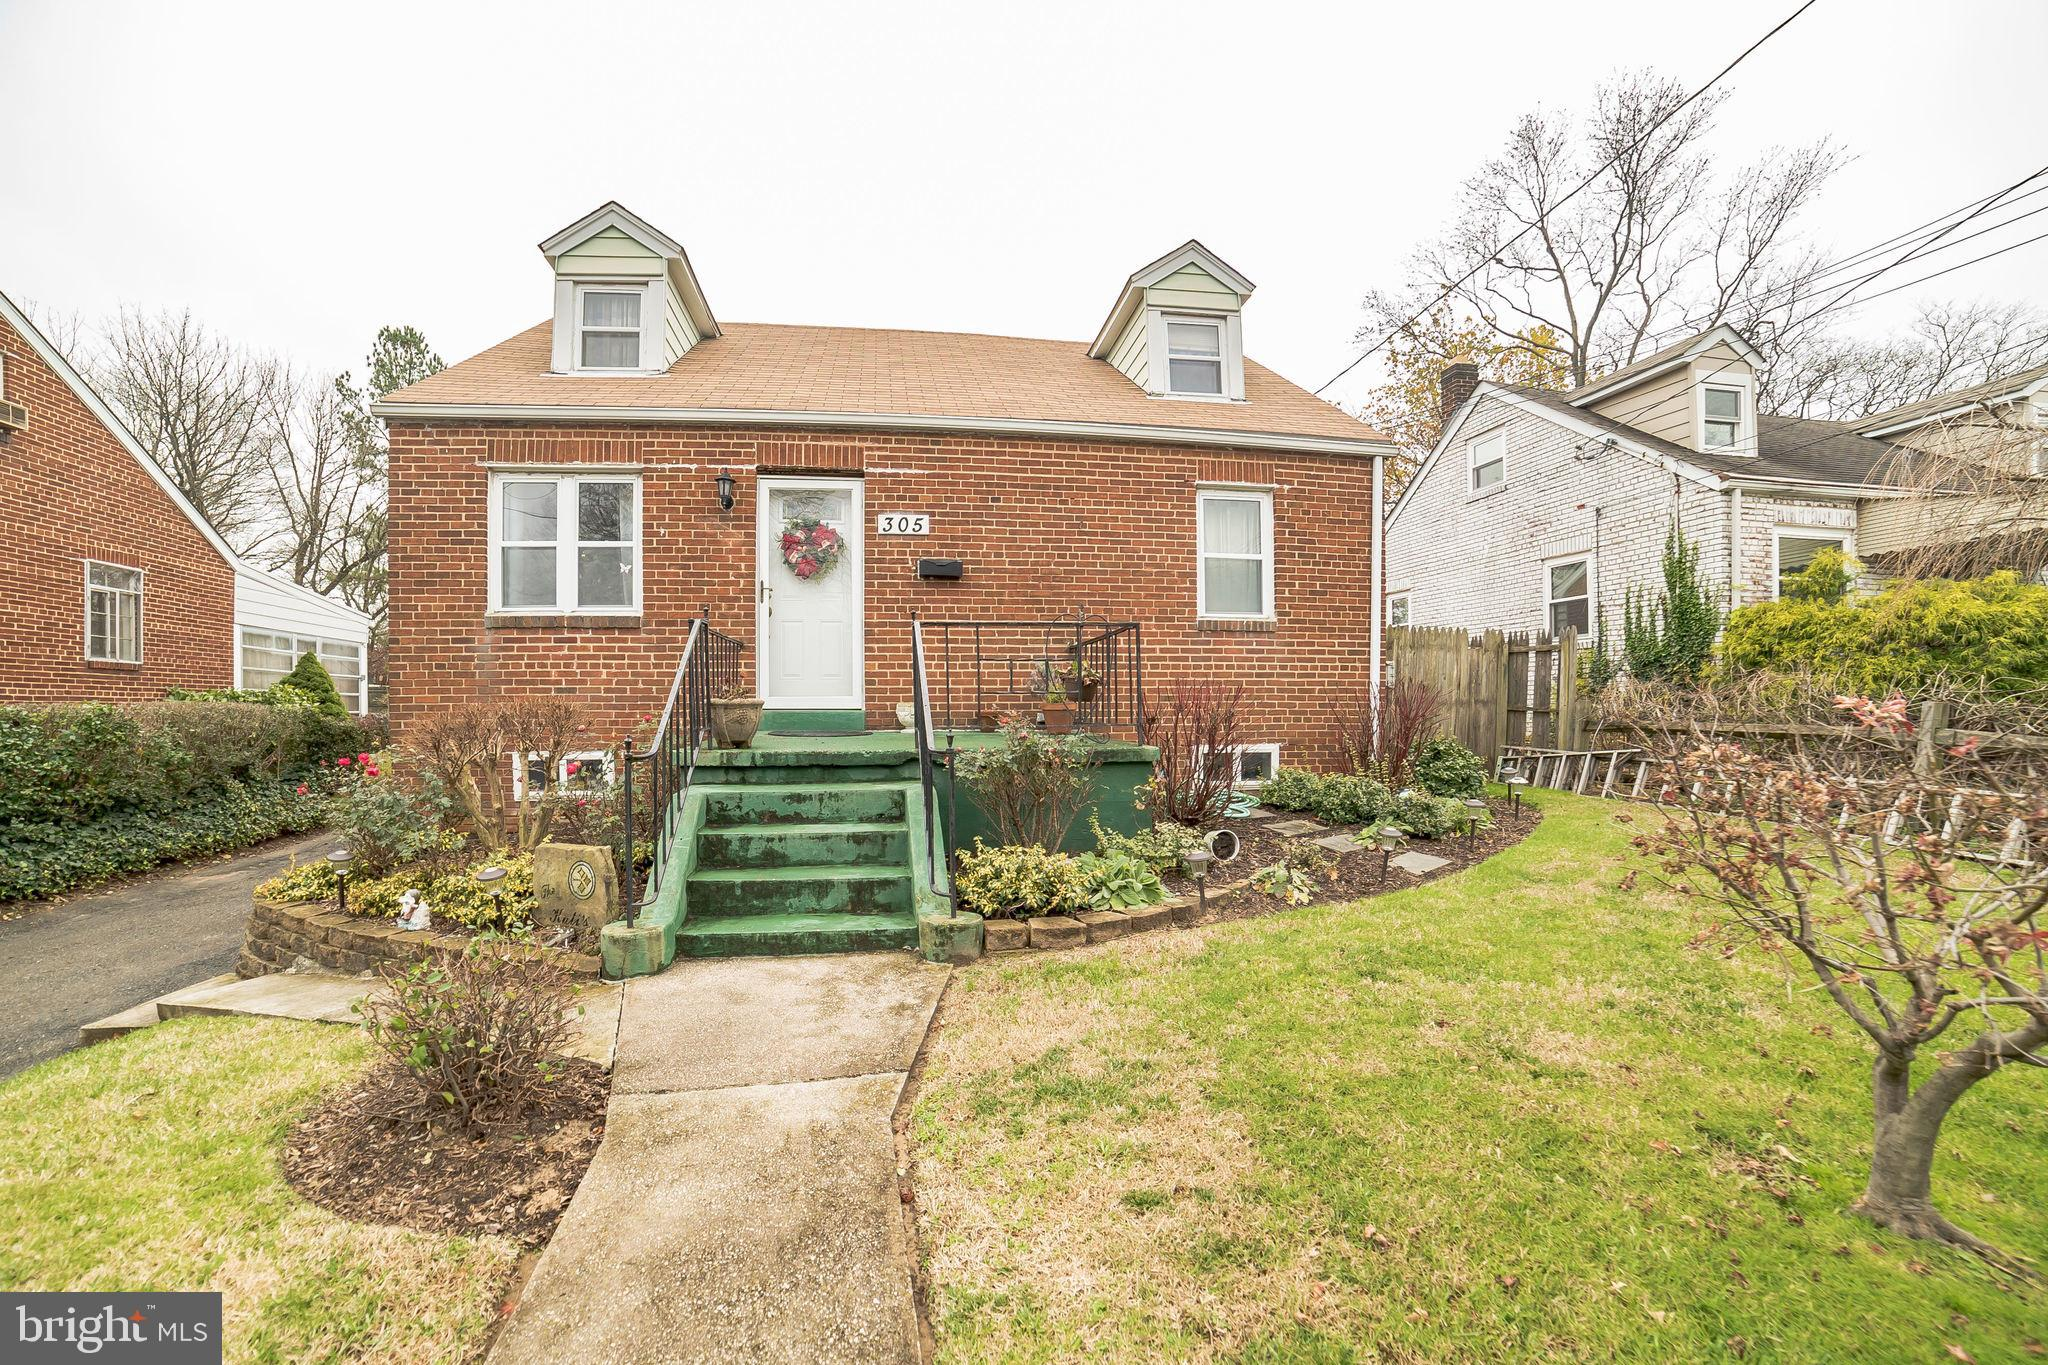 Brick Cape Cod in Glen Gardens with 4 bedrooms and 2 full bathrooms. Home consists of over 1,600 tot